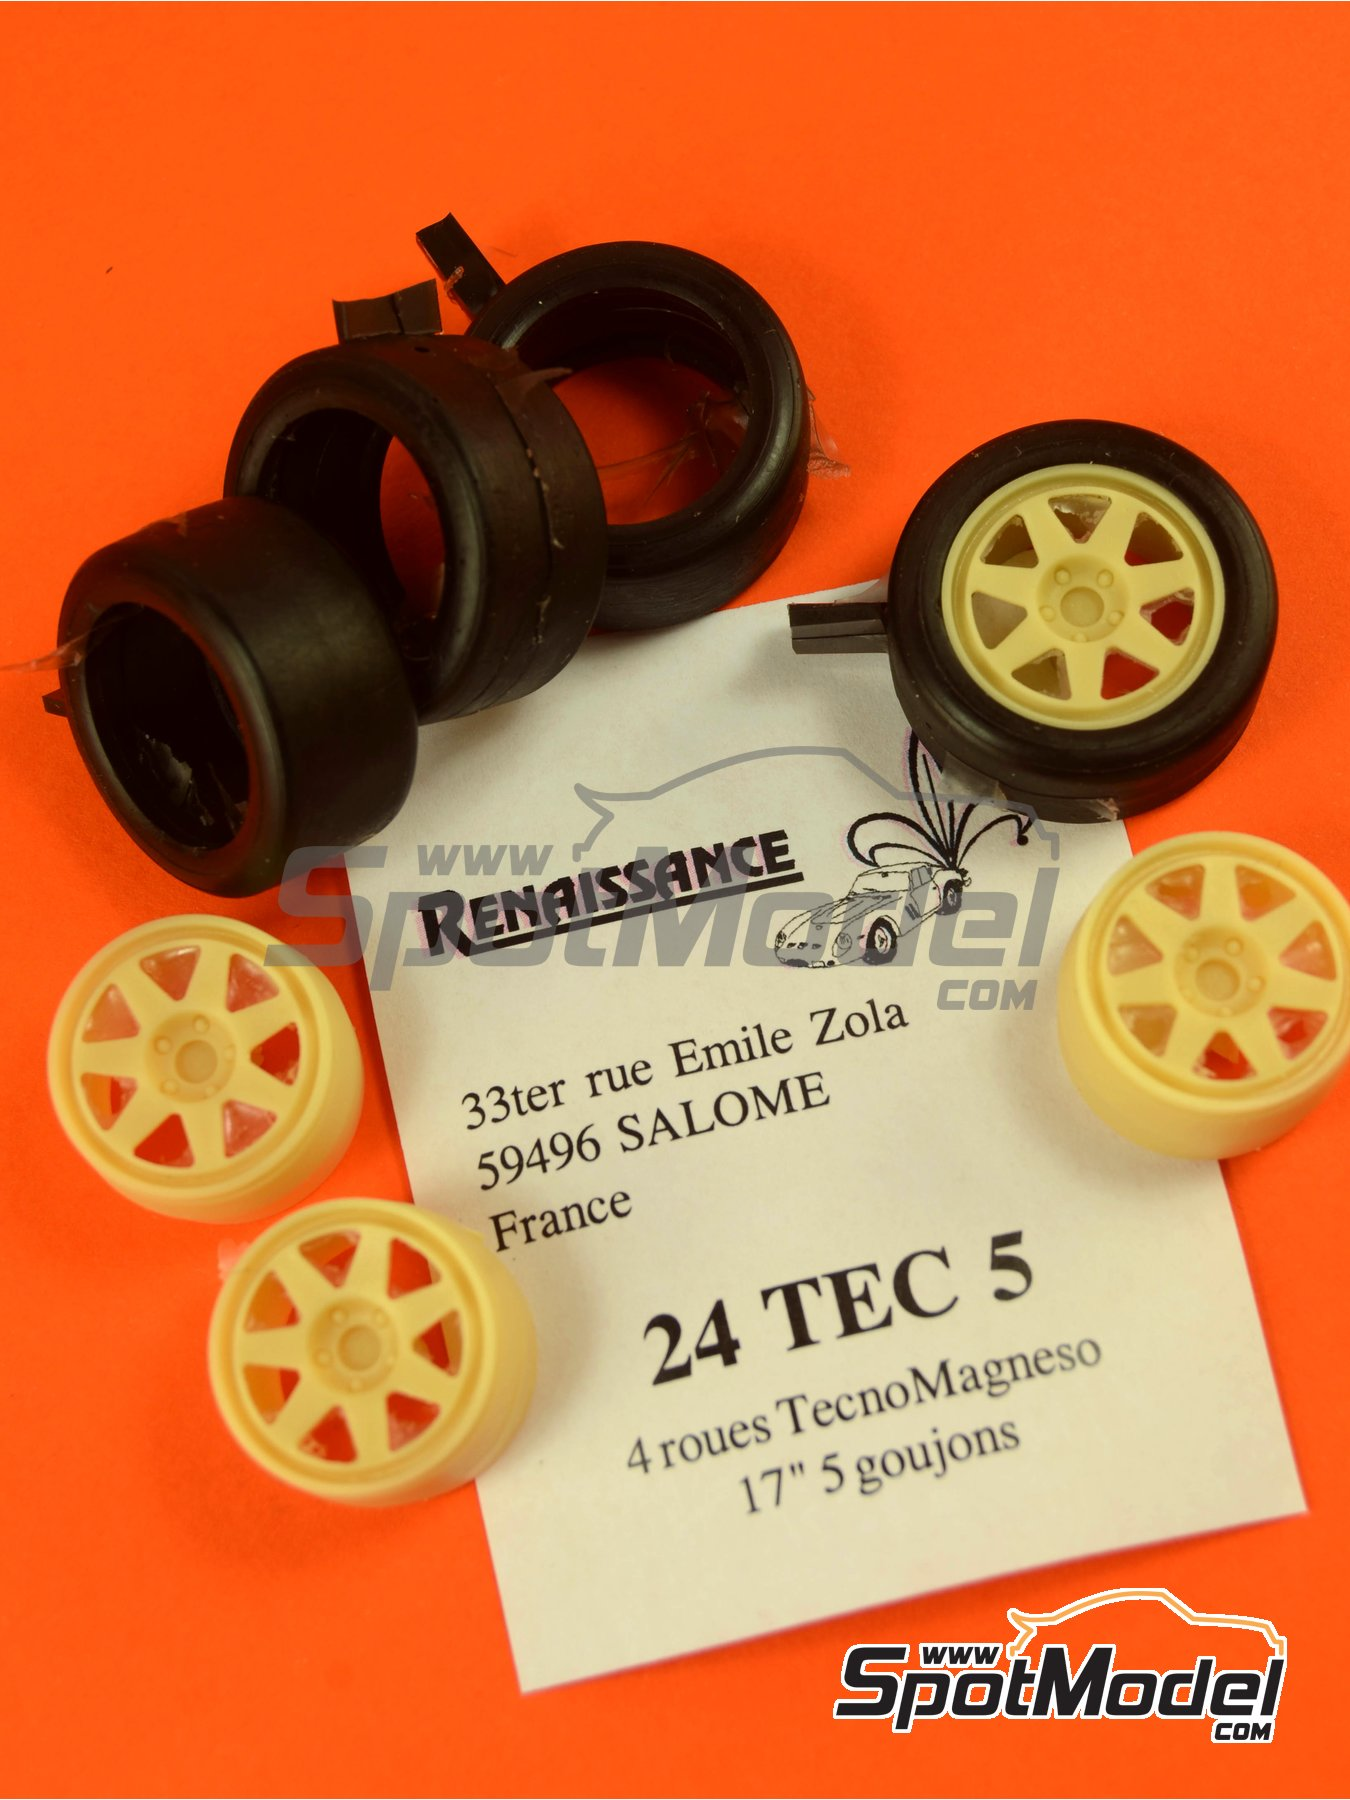 TecnoMagnesio 17 inches 5 nut rims and slicks tyres | Rims and tyres set in 1/24 scale manufactured by Renaissance Models (ref. 24TEC5) image